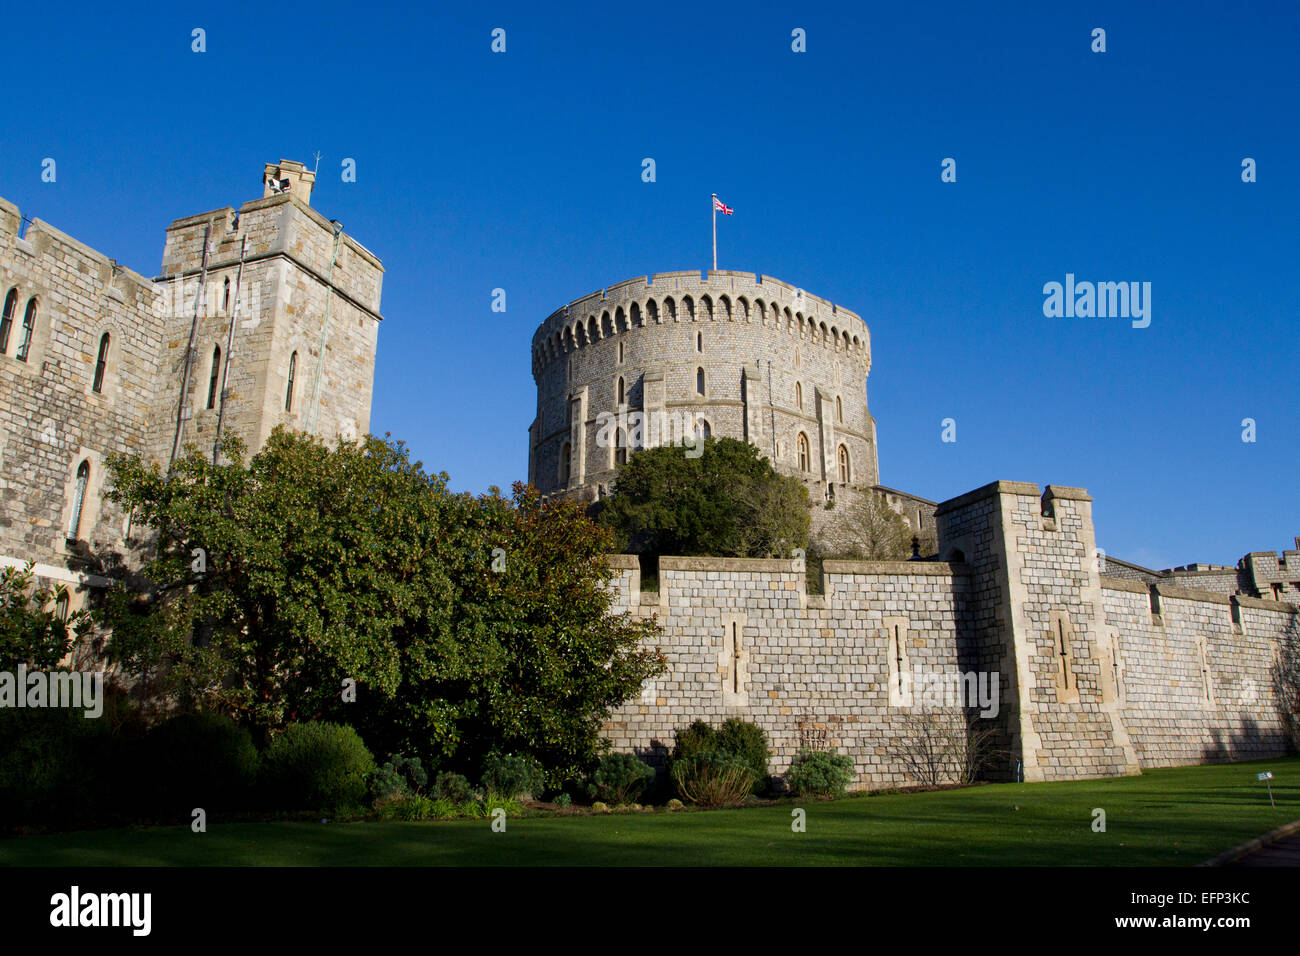 Round Tower (The Keep) and outer walls at Windsor Castle, Berkshire, England with Union Jack flying in January - Stock Image